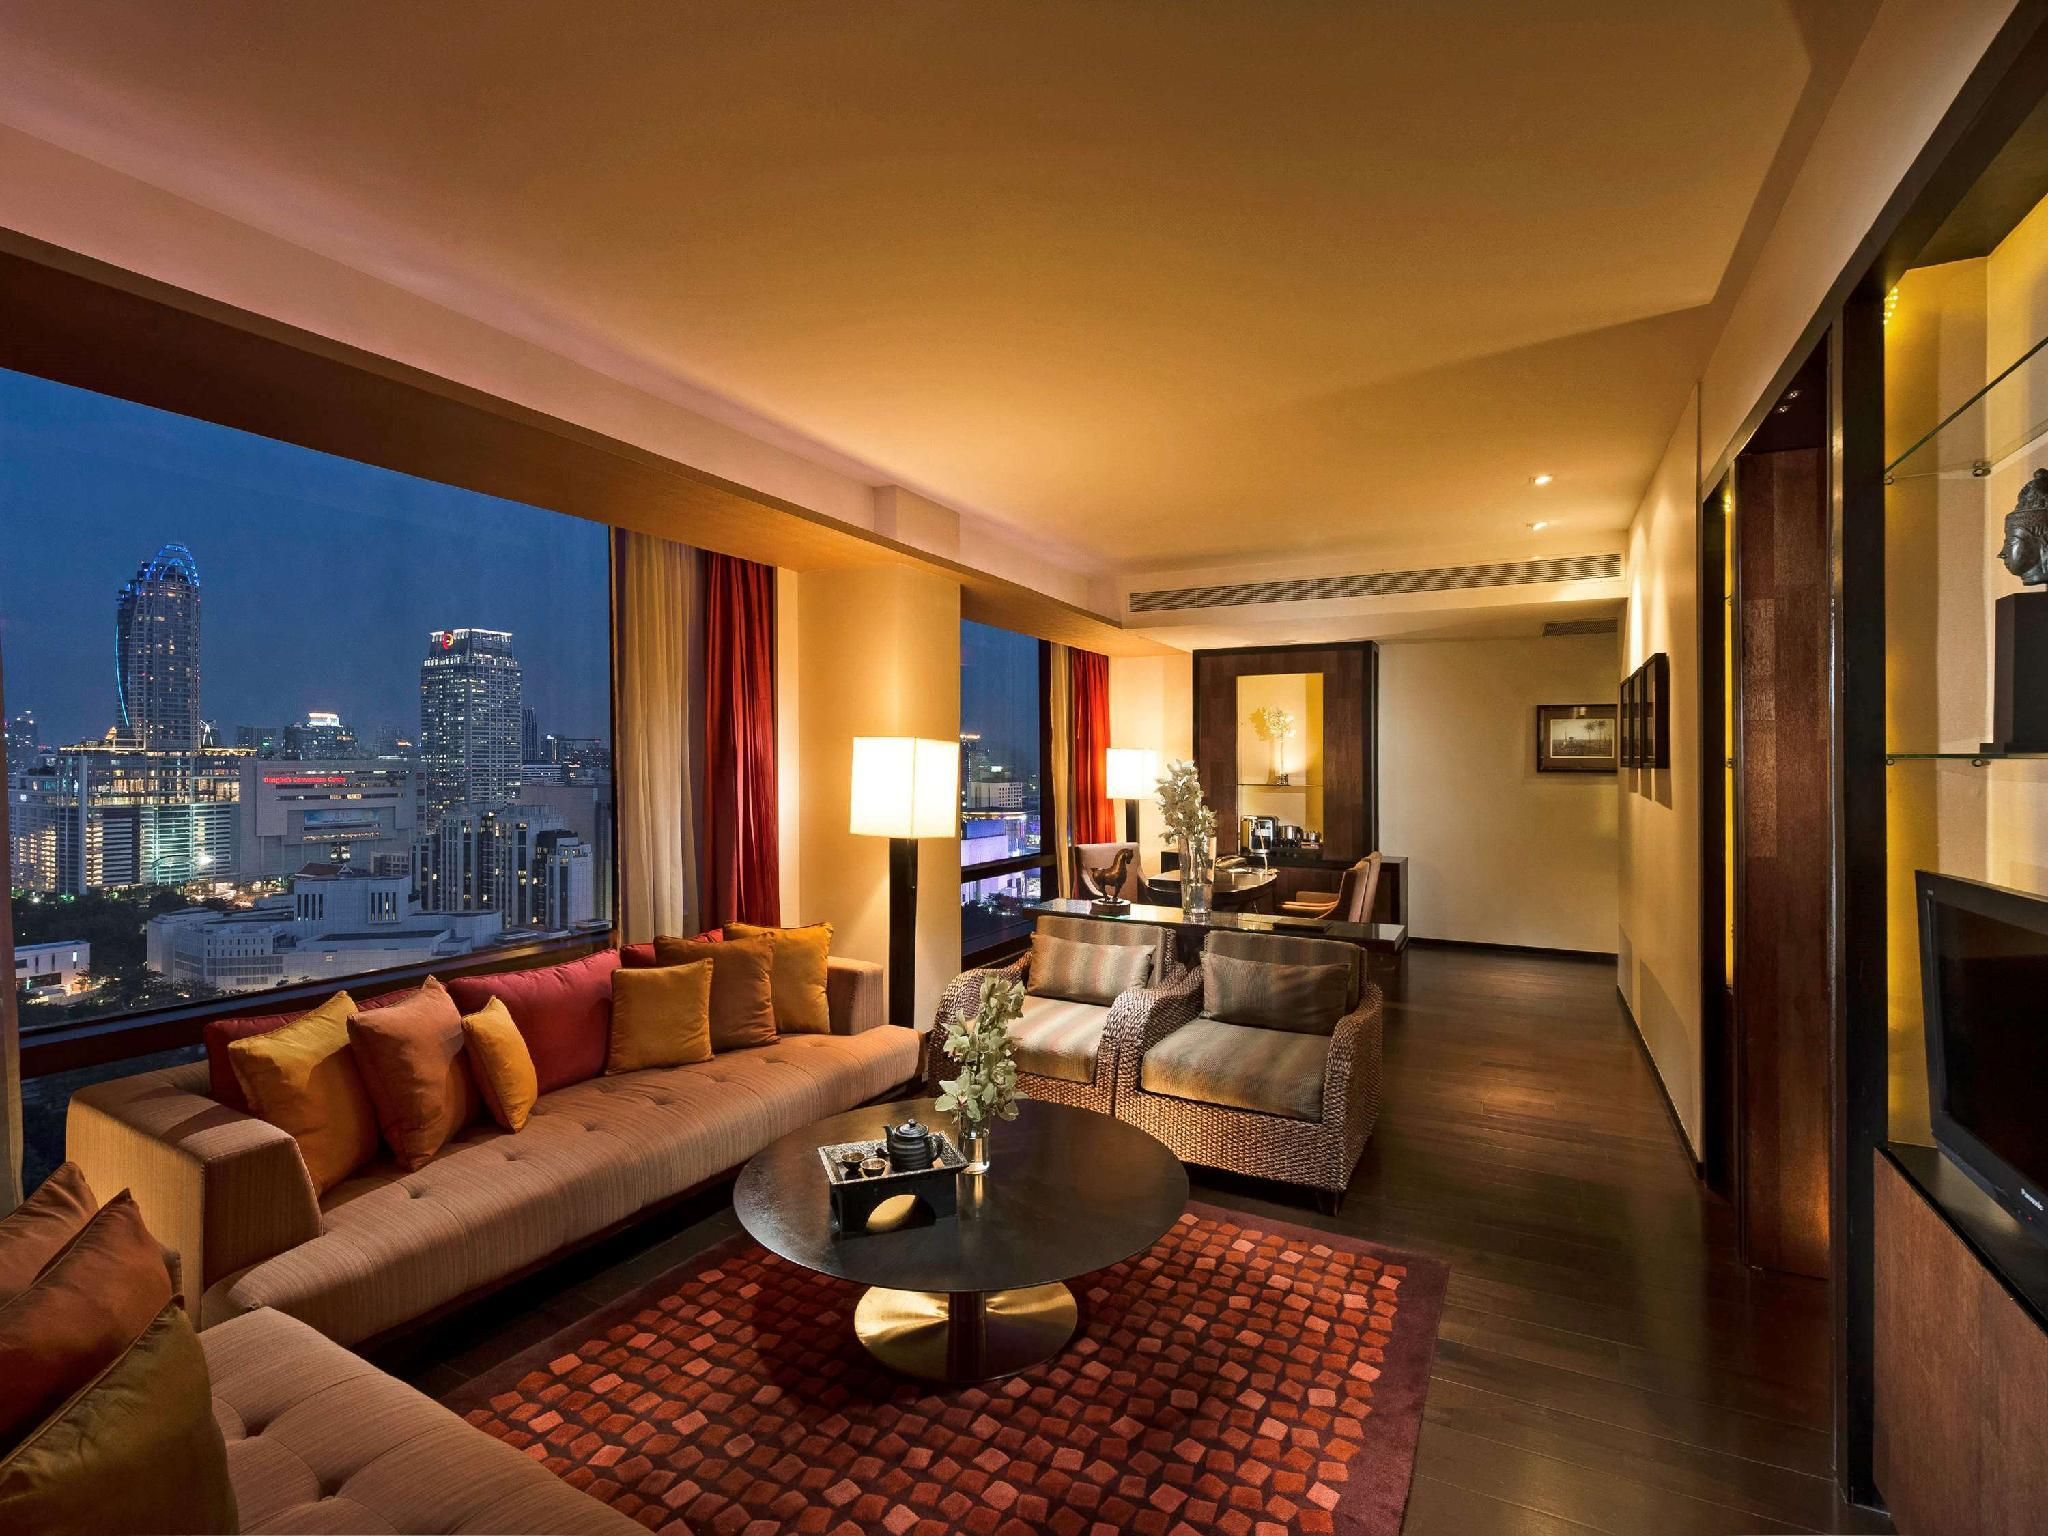 FAMILY SUITE ROOM, 1 King Size Bed, City View